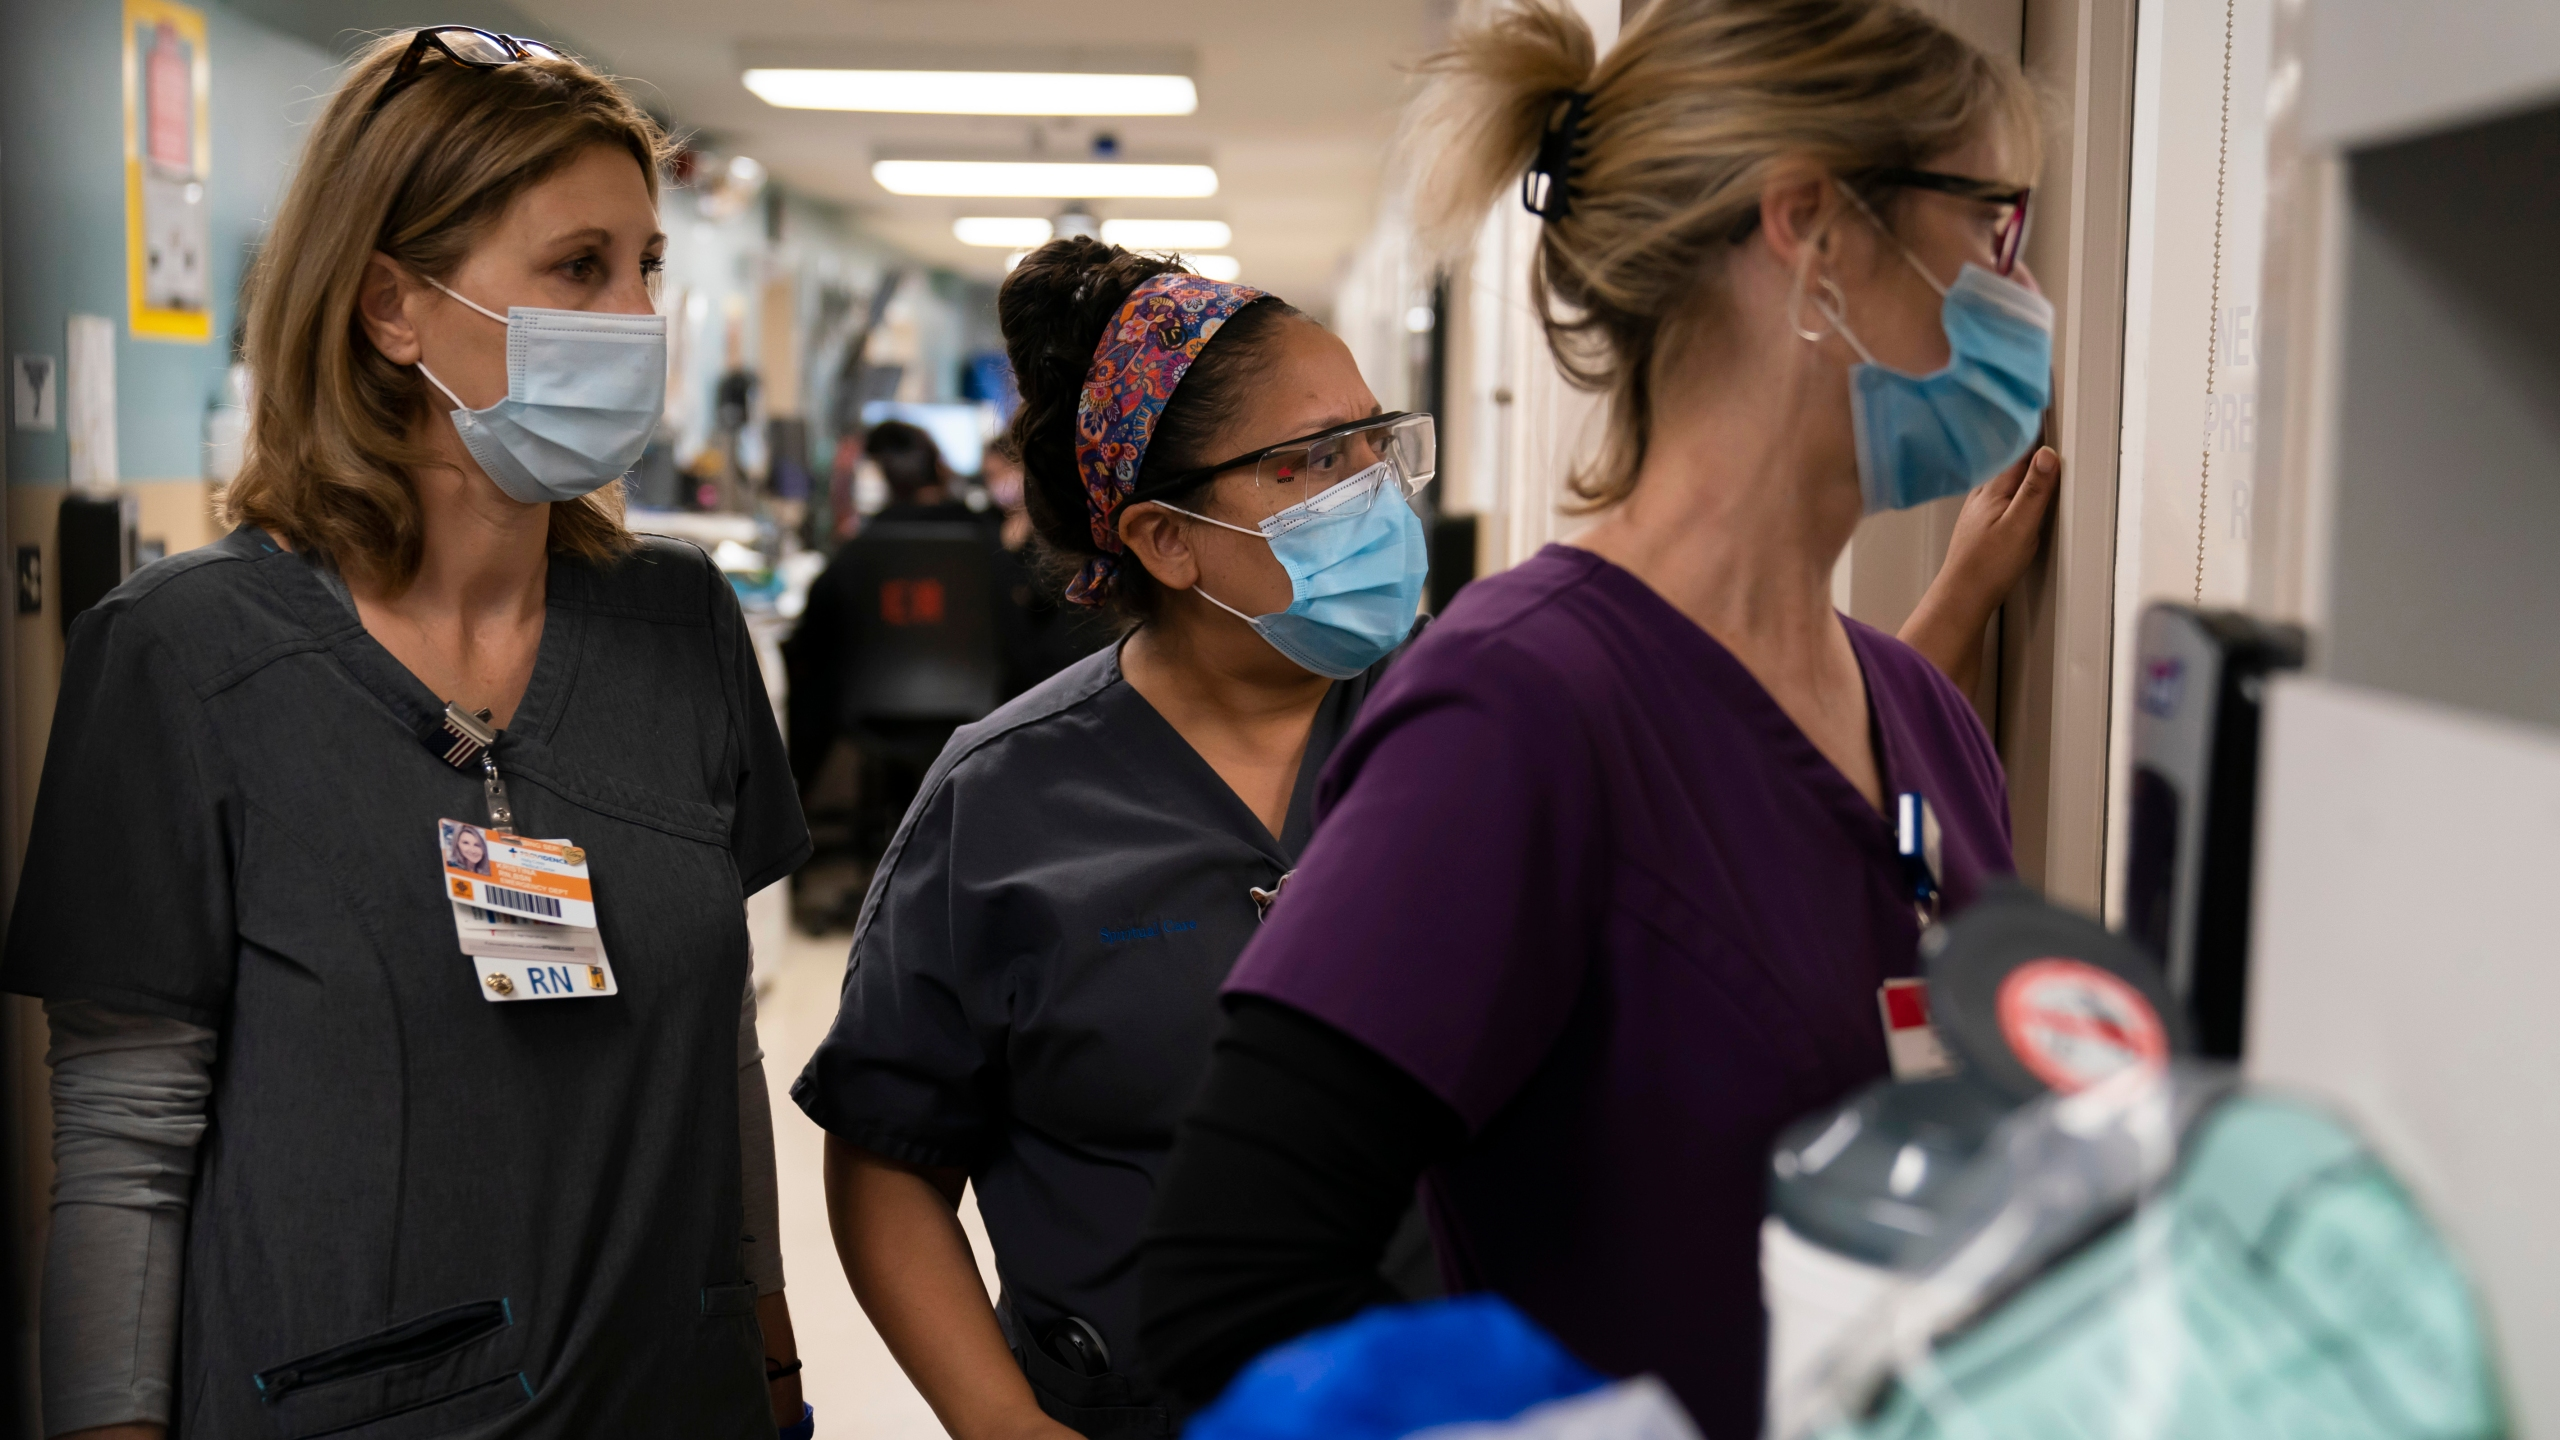 """Registered Nurse Kristina Shannon, from left, chaplain Andrea Cammarota, and Emergency Room charge nurse Cathy Carter watch as medical workers try to resuscitate a patient who tested positive for coronavirus in the emergency room at Providence Holy Cross Medical Center in the Mission Hills section of Los Angeles, Thursday, Nov. 19, 2020. """"I think ER nurses are a special breed,"""" said Shannon. """"At that moment, you are just doing your job. You try not to think of the fact that that's somebody's mother, grandmother, or wife laying in there."""" (AP Photo/Jae C. Hong)"""